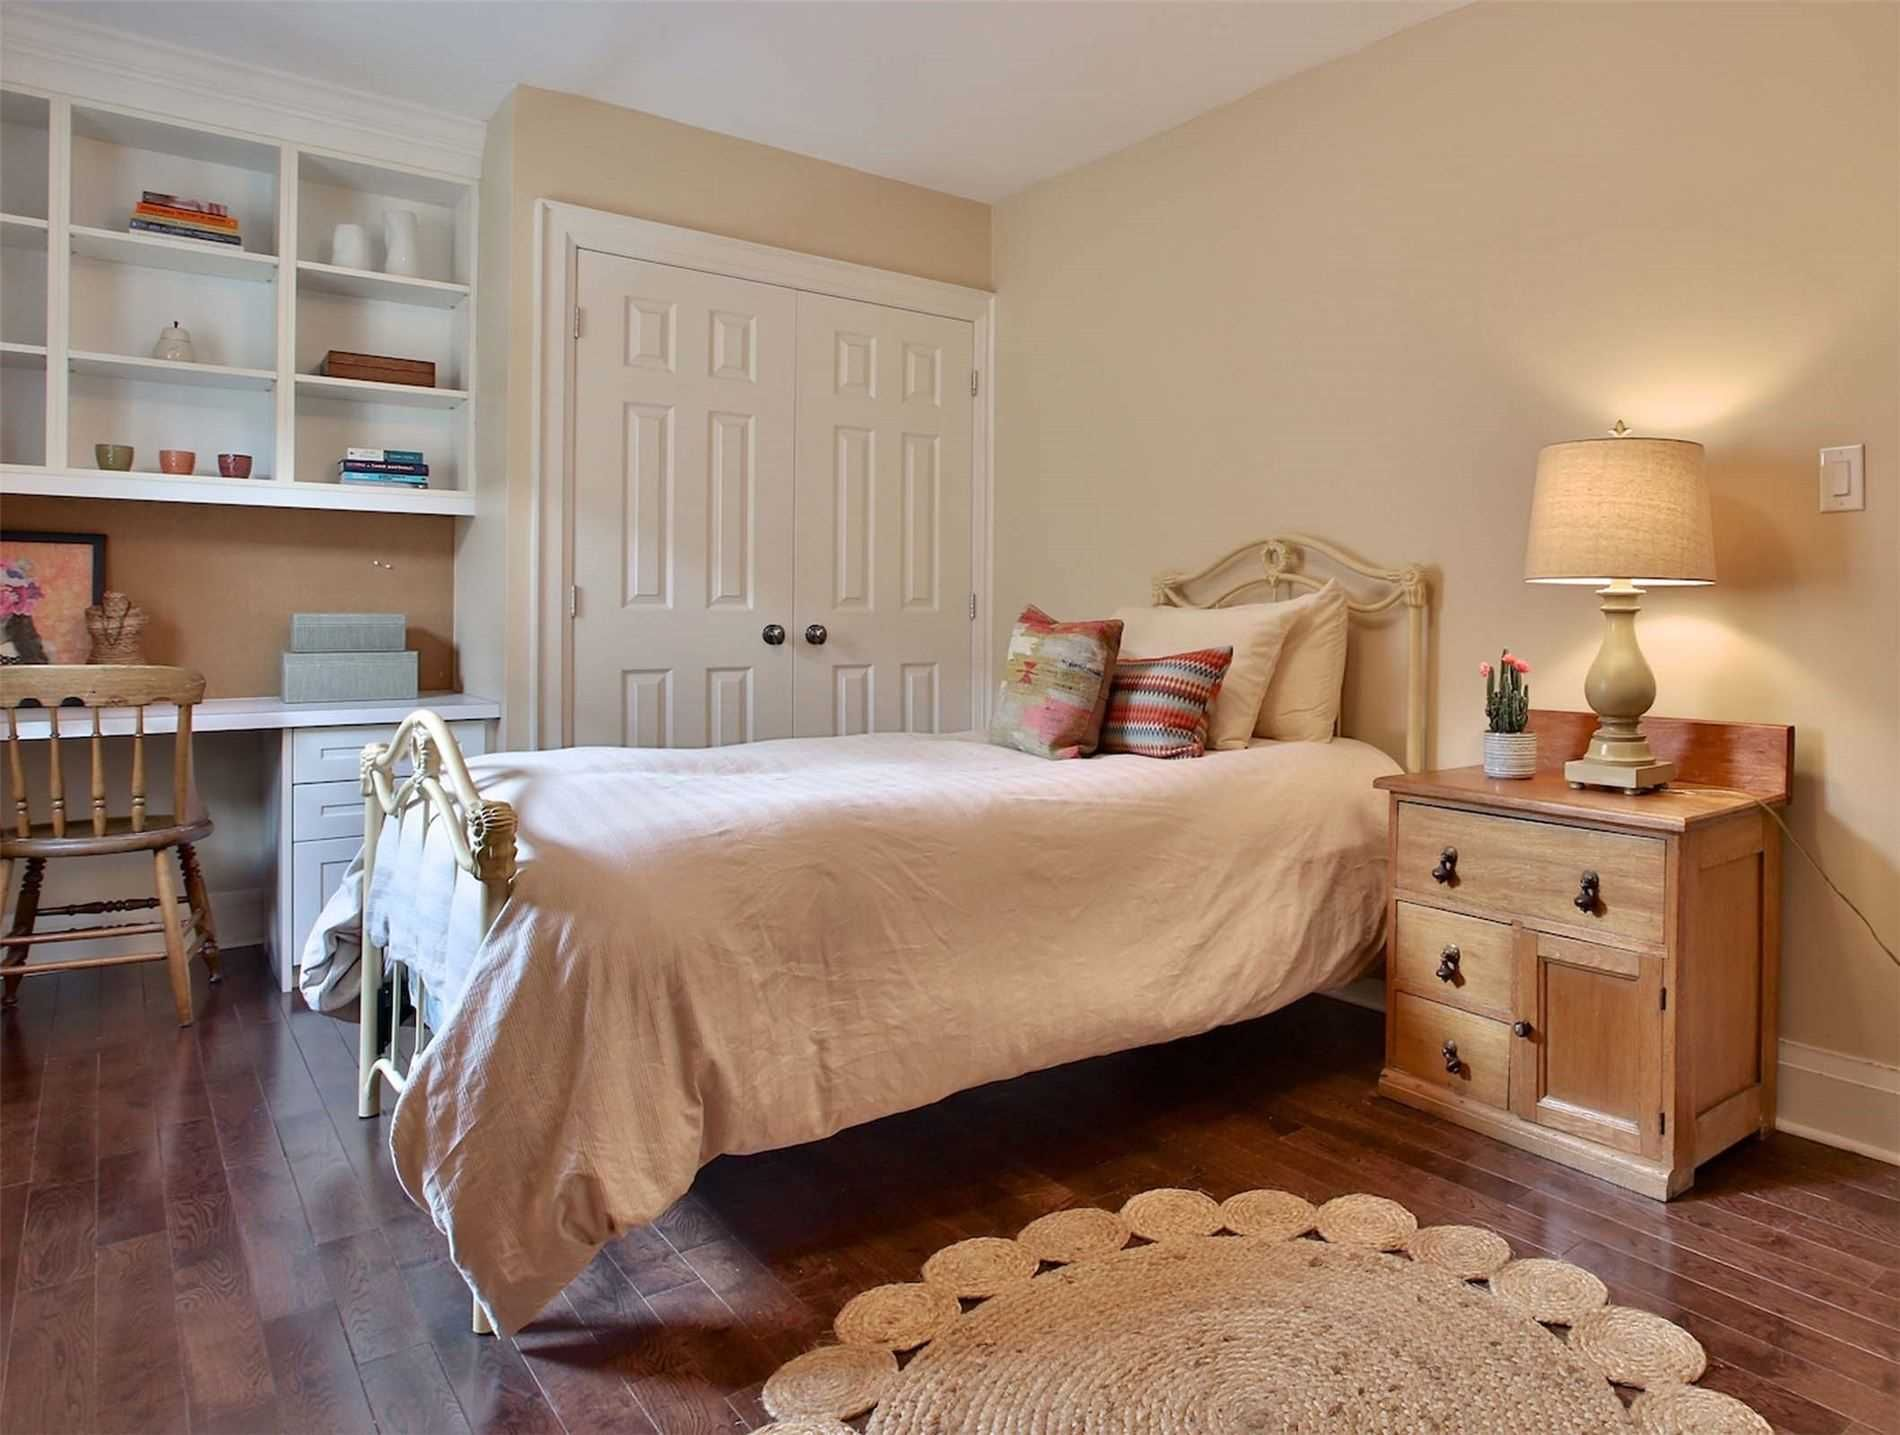 Photo 13: Photos: 181 W Glengrove Avenue in Toronto: Lawrence Park South House (2-Storey) for sale (Toronto C04)  : MLS®# C4633543